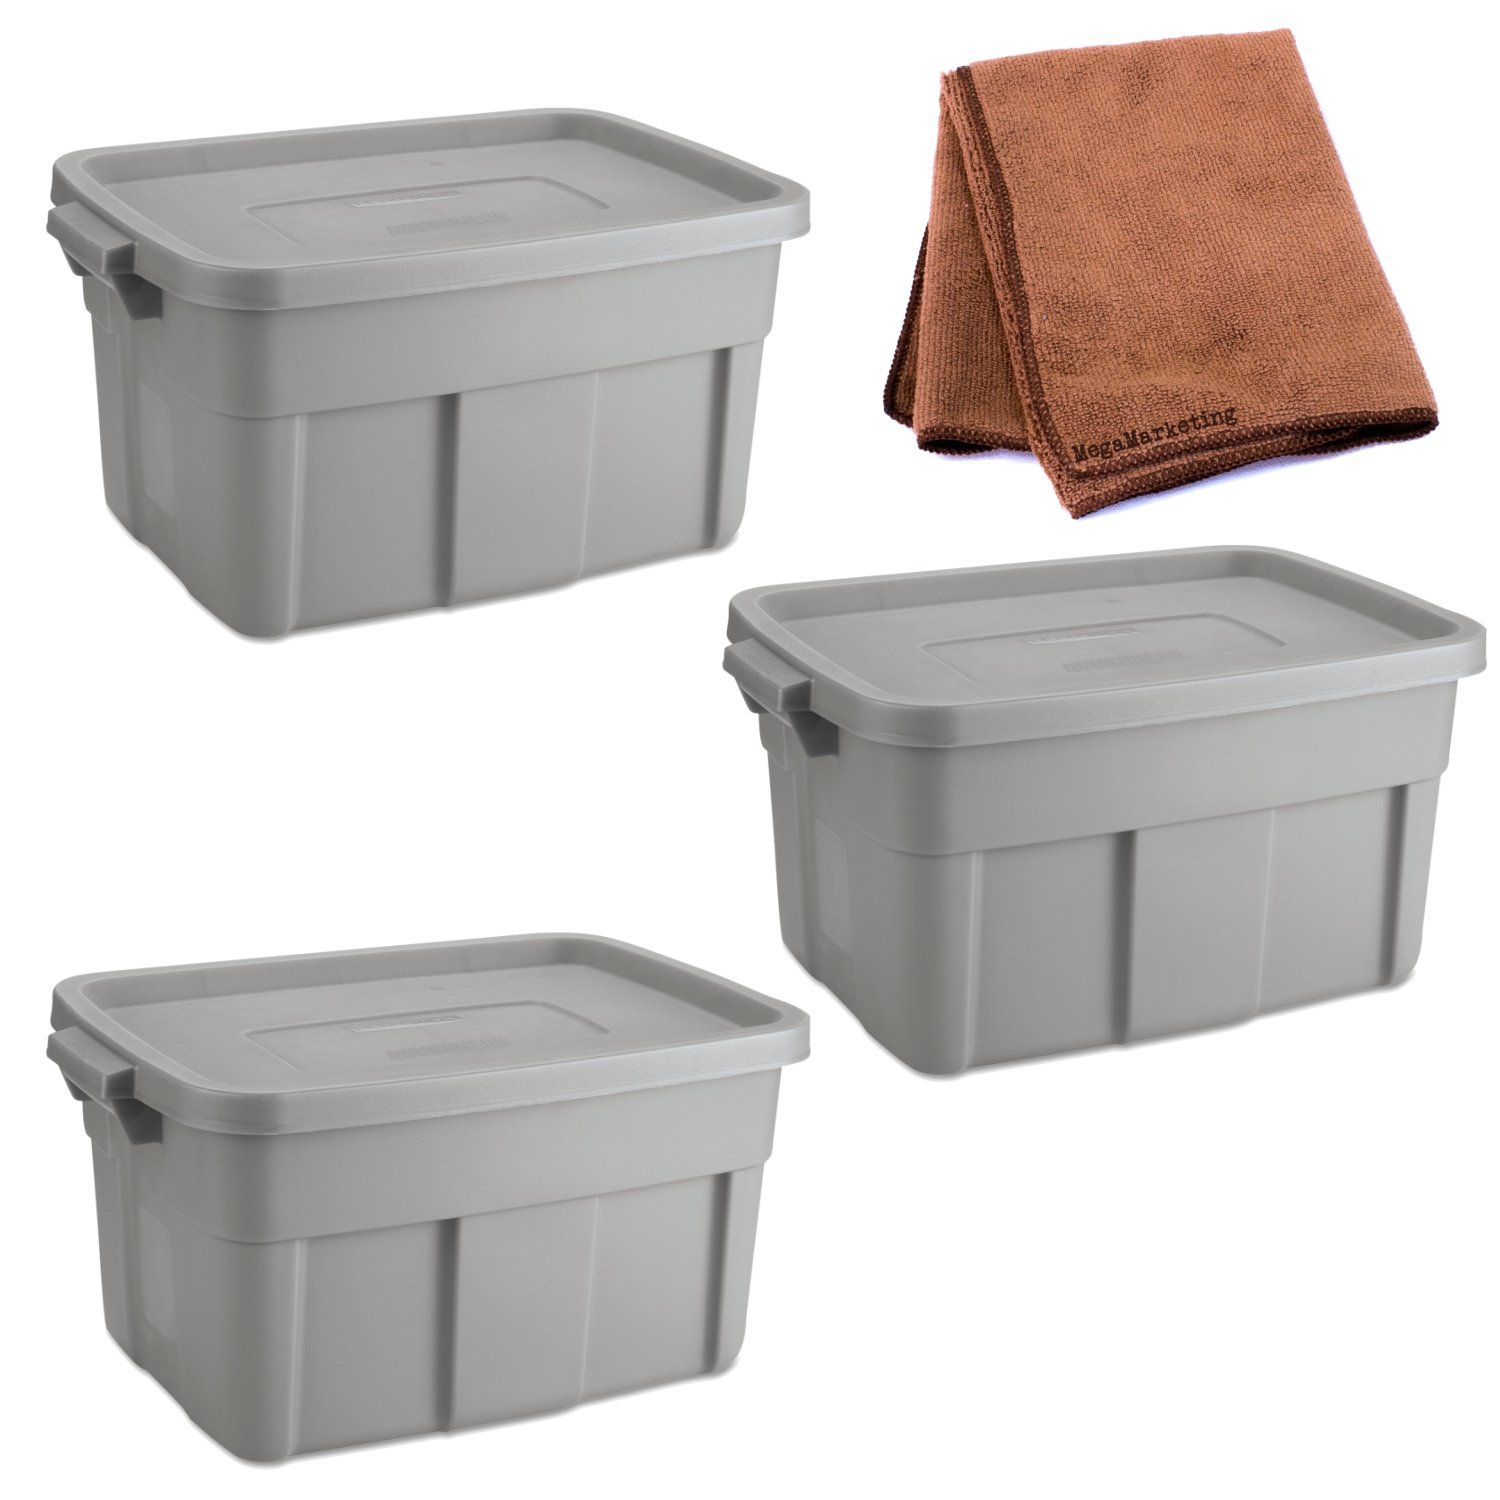 Rubbermaid 14-Gallon Roughneck Storage Box Tote, Steel Gray, Case of 3 with Cleaning Cloth